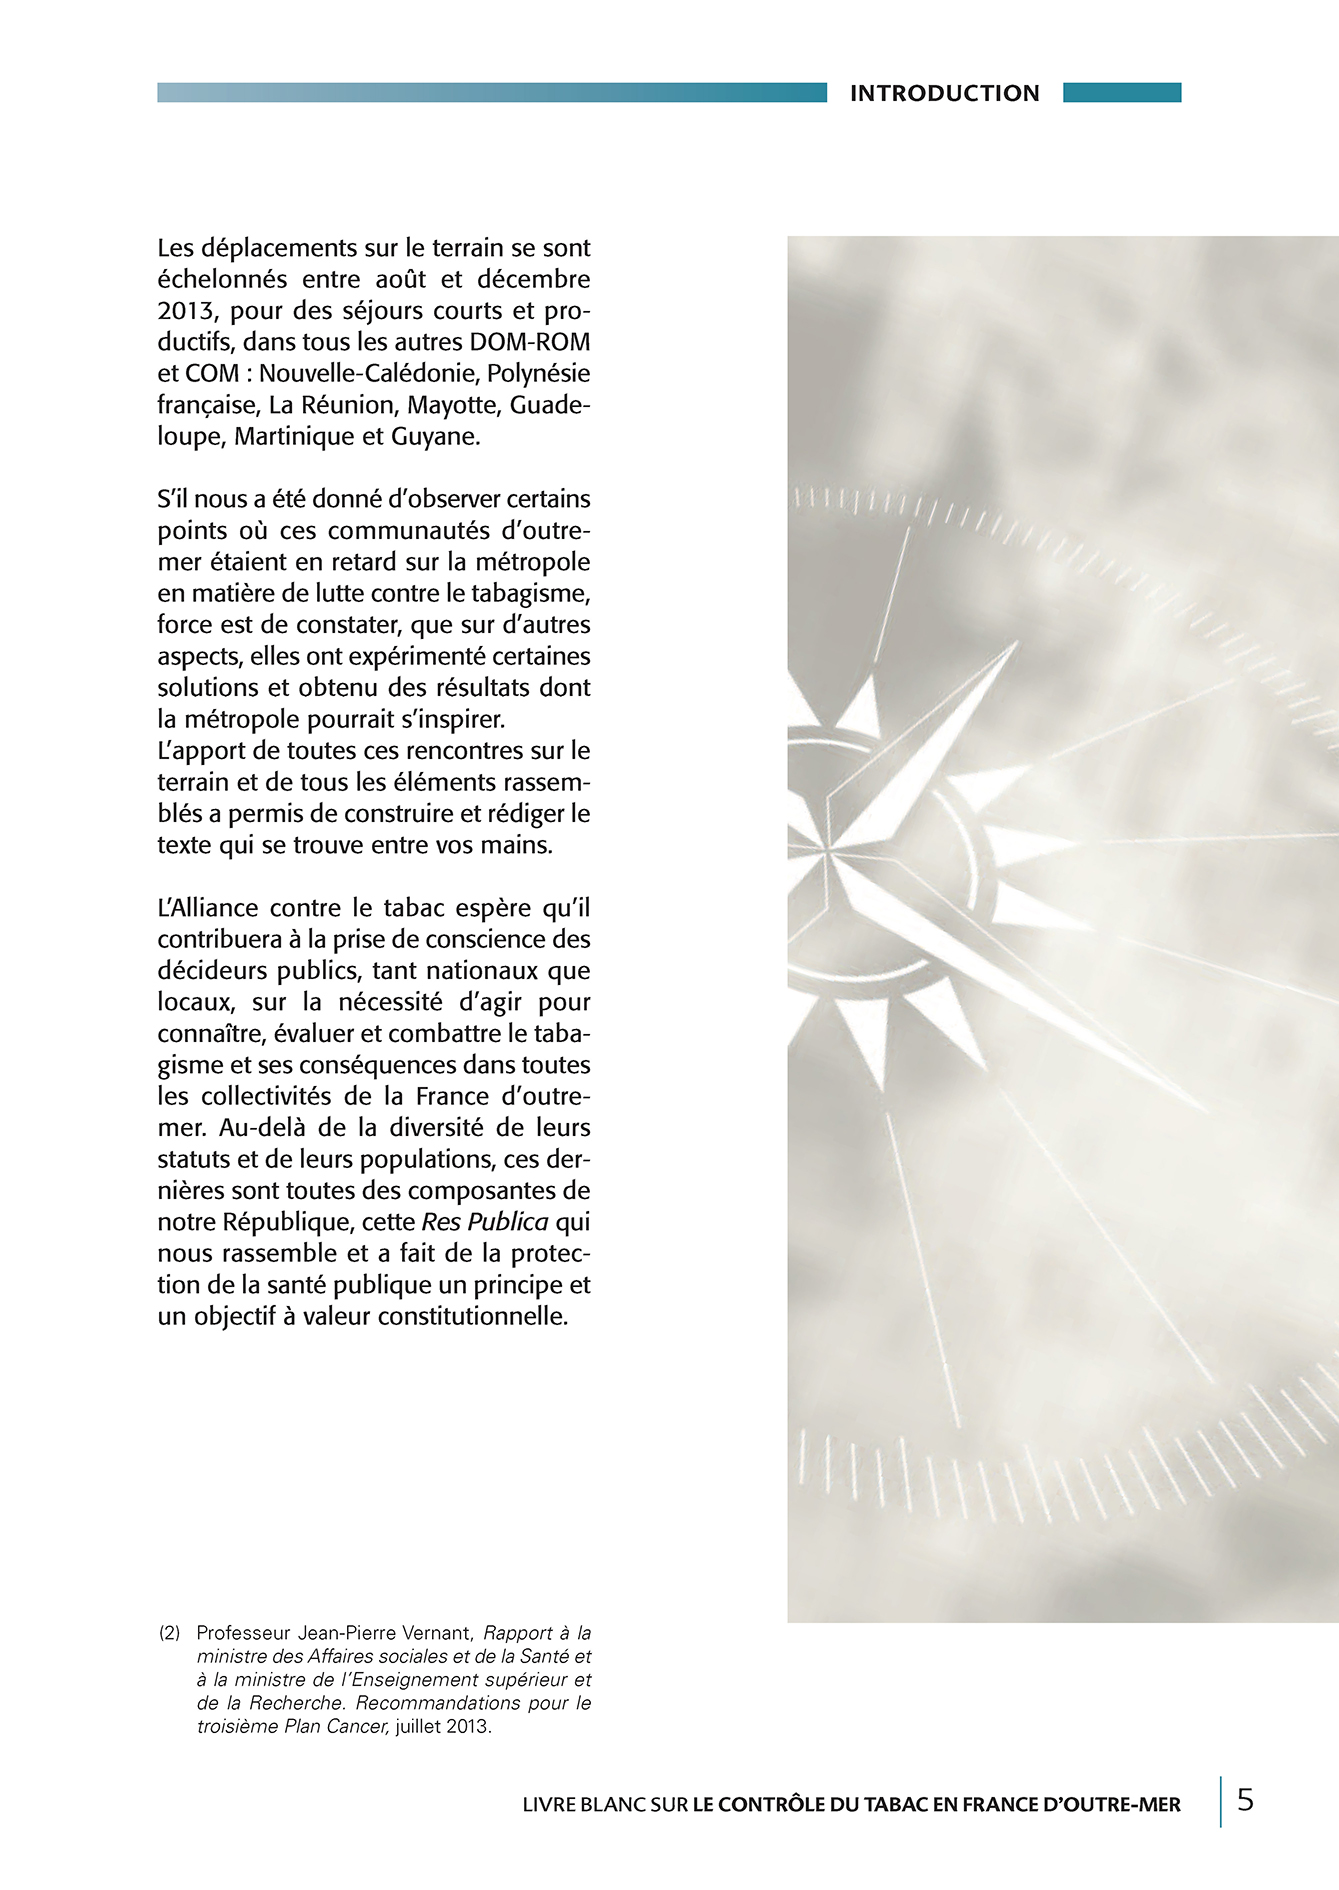 ACT_Livre-blanc-contrôle-tabac-outre-mer-2014_Page_007.jpg